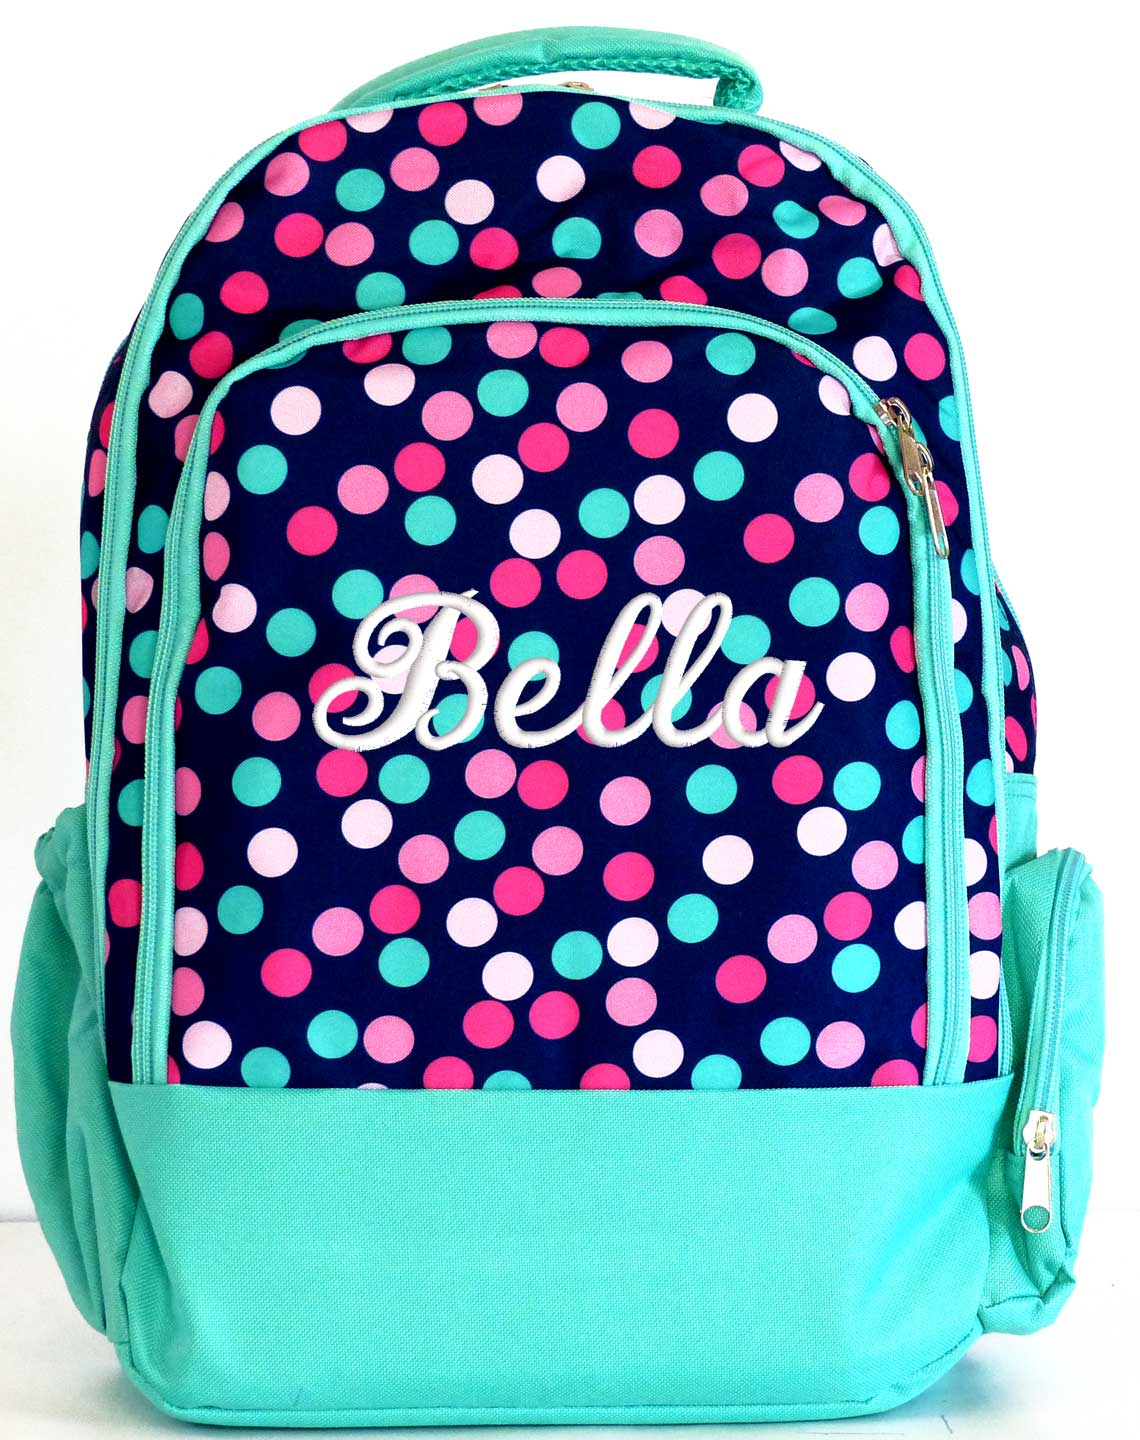 Personalized Backpacks For Kids mboCk7I7